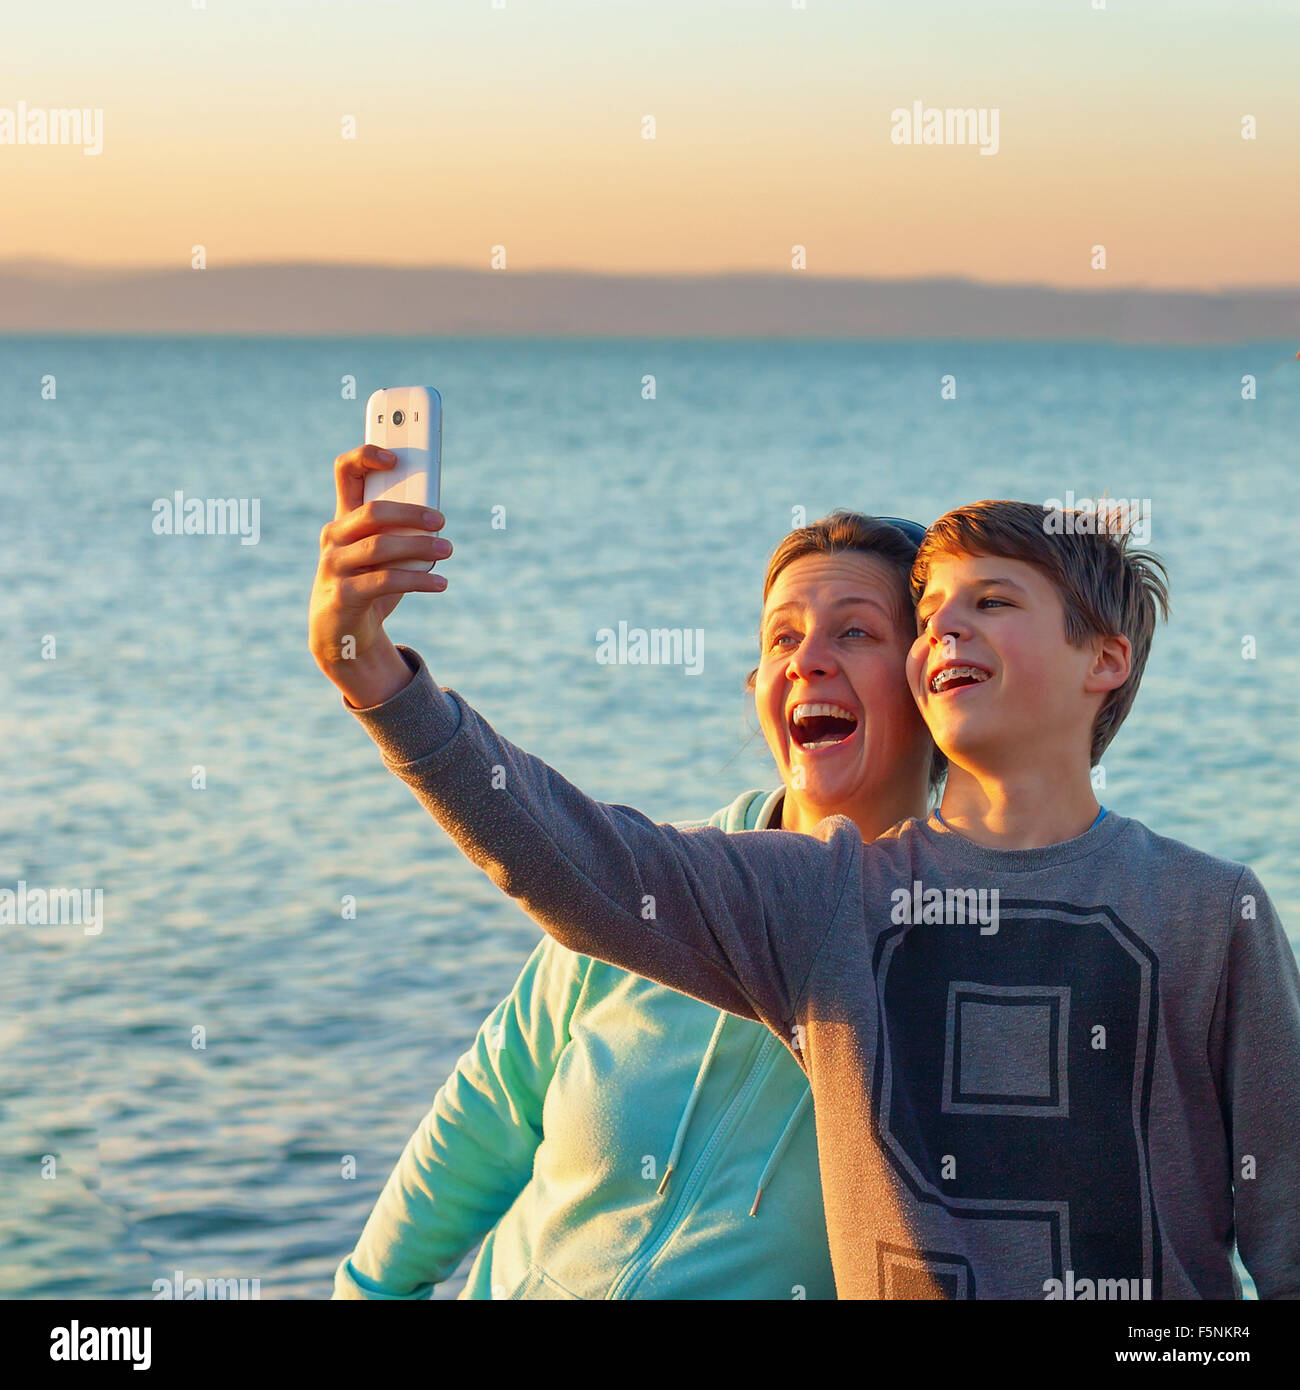 Young boy and a happy adult woman taking a selfie in front of a lake the boy has braces on his teeth - Stock Image